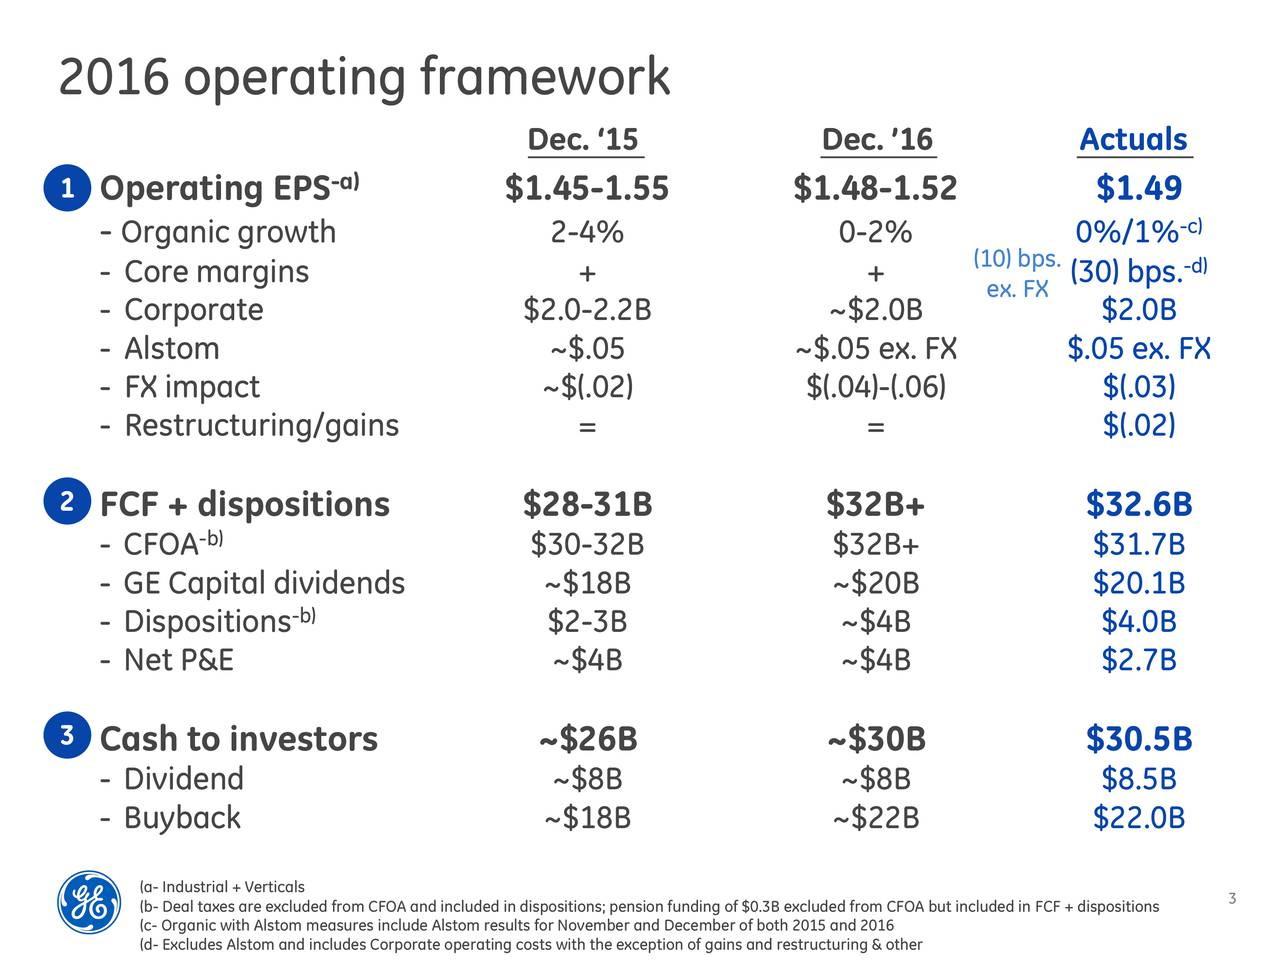 Dec. 15 Dec. 16 Actuals -a) 1 Operating EPS $1.45-1.55 $1.48-1.52 $1.49 -Organic growth 2-4% 0-2% 0%/1% -c) - Core margins + + (10) b(30) bps.d) ex. FX - Corporate $2.0-2.2B ~$2.0B $2.0B - Alstom ~$.05 ~$.05 ex. FX $.05 ex. FX - FX impact ~$(.02) $(.04)-(.06) $(.03) - Restructuring/gains = = $(.02) 2 FCF + dispositions $28-31B $32B+ $32.6B - CFOA -b) $30-32B $32B+ $31.7B - GE Capital dividends ~$18B ~$20B $20.1B - Dispositionsb) $2-3B ~$4B $4.0B - Net P&E ~$4B ~$4B $2.7B 3 Cash to investors ~$26B ~$30B $30.5B - Dividend ~$8B ~$8B $8.5B - Buyback ~$18B ~$22B $22.0B (b- Deal taxes are excluded from CFOA and included in dispositions; pension funding of $0.3B excluded from CFOA but included in FCF + dispositions (c- Organic with Alstom measures include Alstom results for November and December of both 2015 and 2016